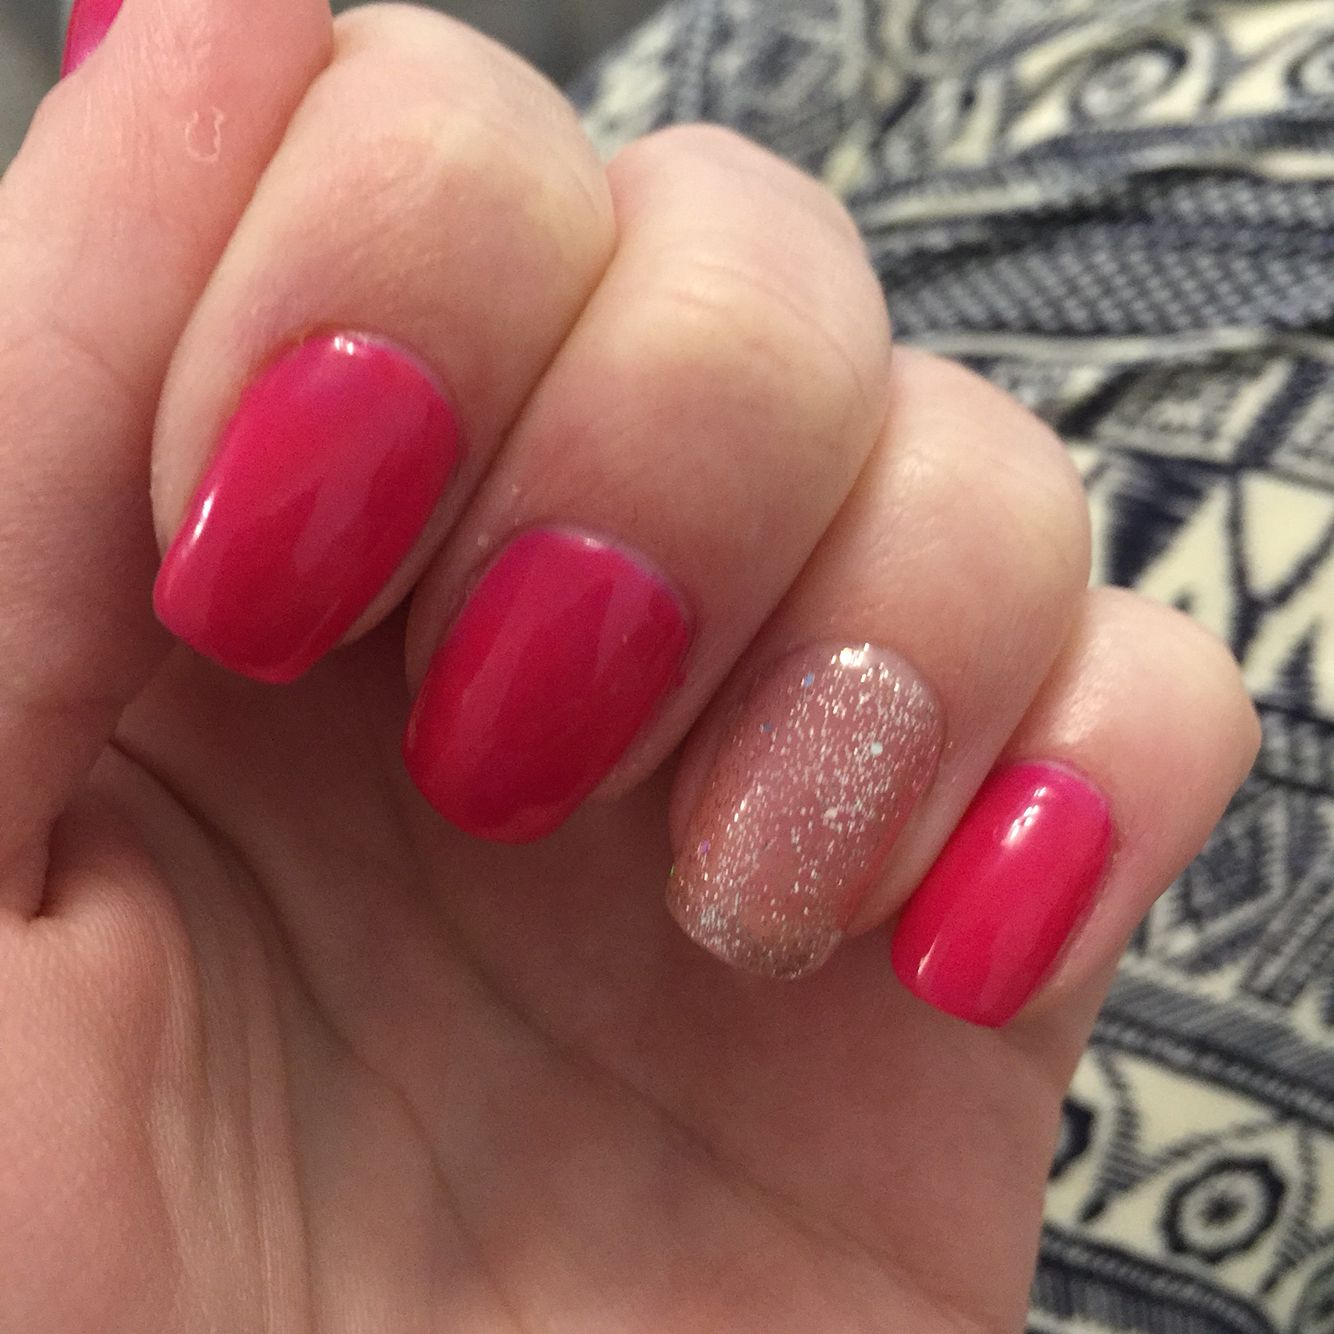 June bride and Gossip girl Gelish nails | Nails | Pinterest | Gelish ...